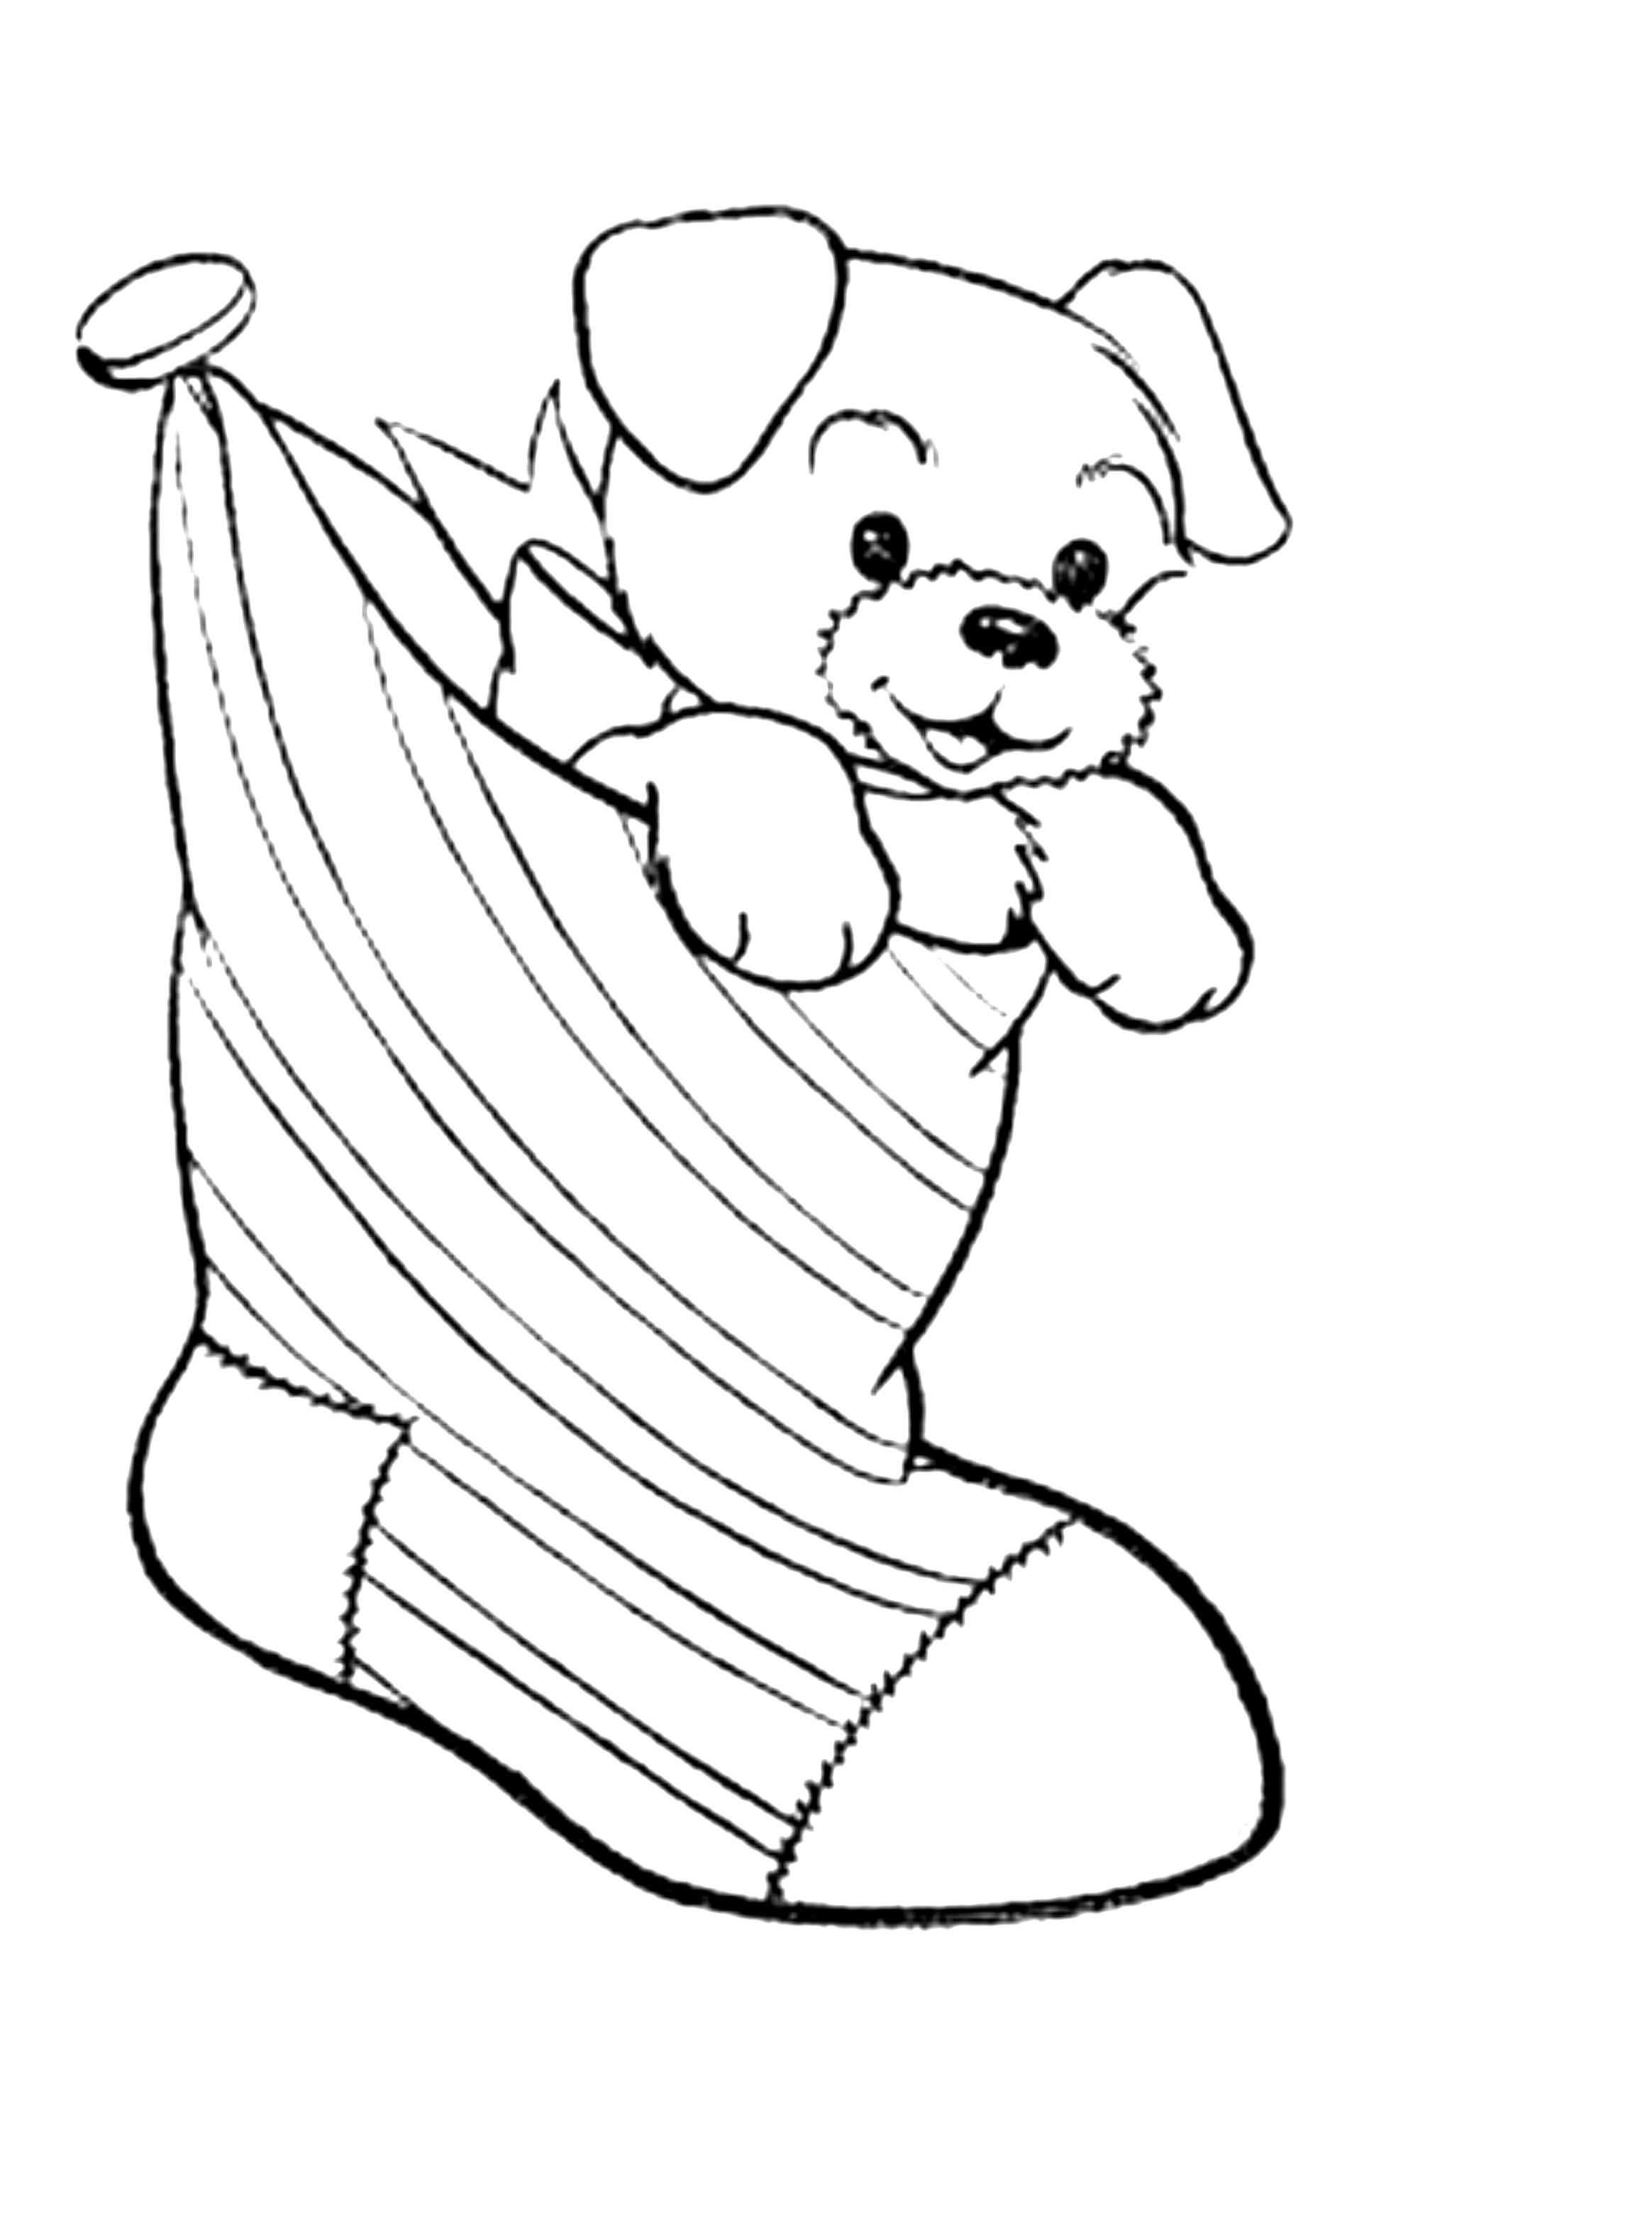 Coloring Pictures Of Puppies Dogs Puppy coloring pages